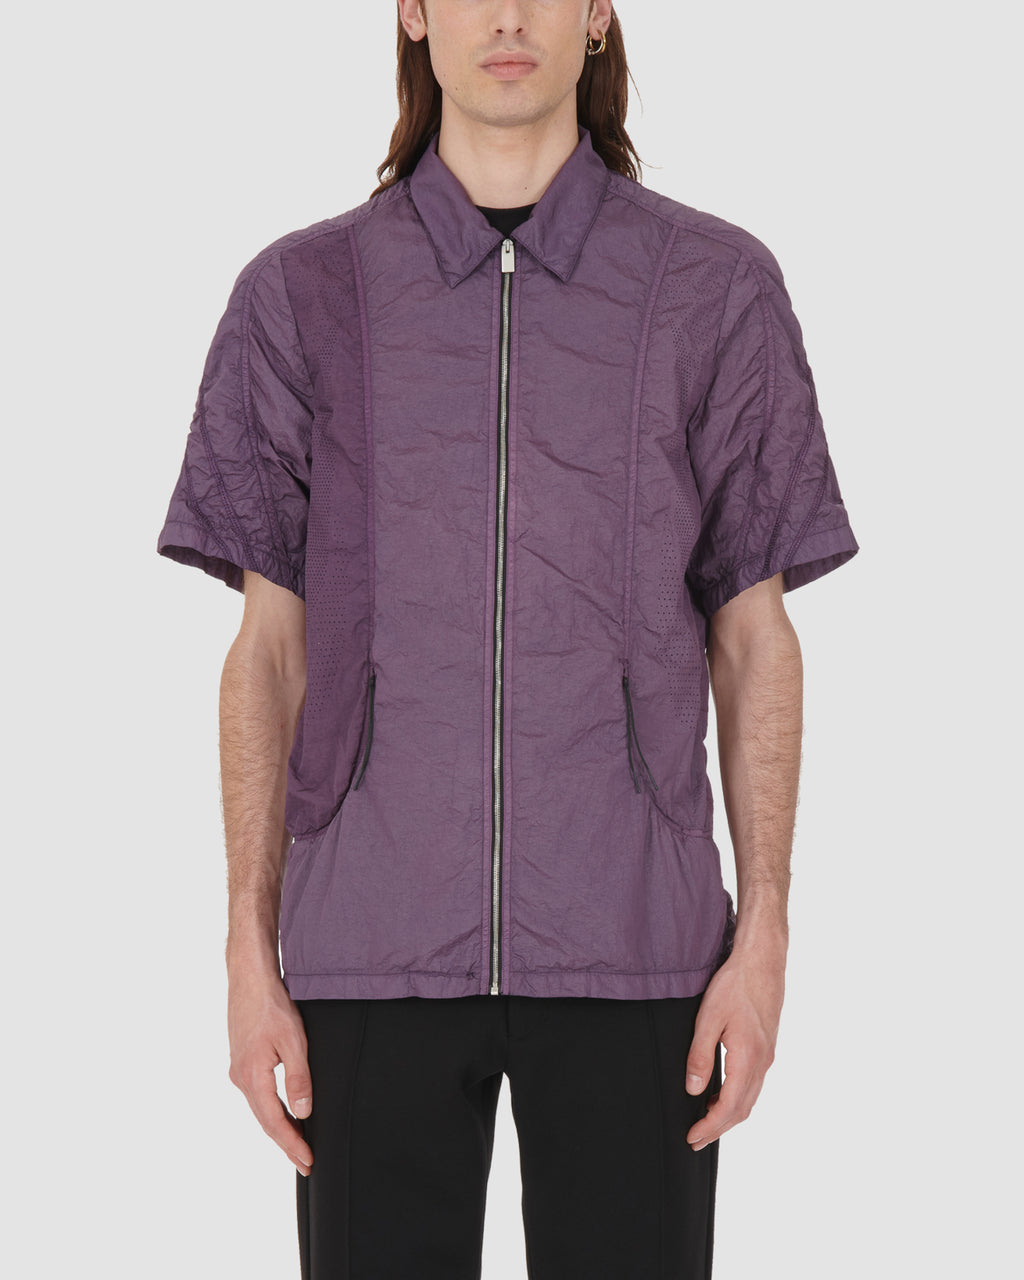 1017 ALYX 9SM | SS GD SHIRT | Shirt | Google Shopping, Man, MEN, PURPLE, S20, S20 Drop II, Shirts, TOPS & SHIRTS